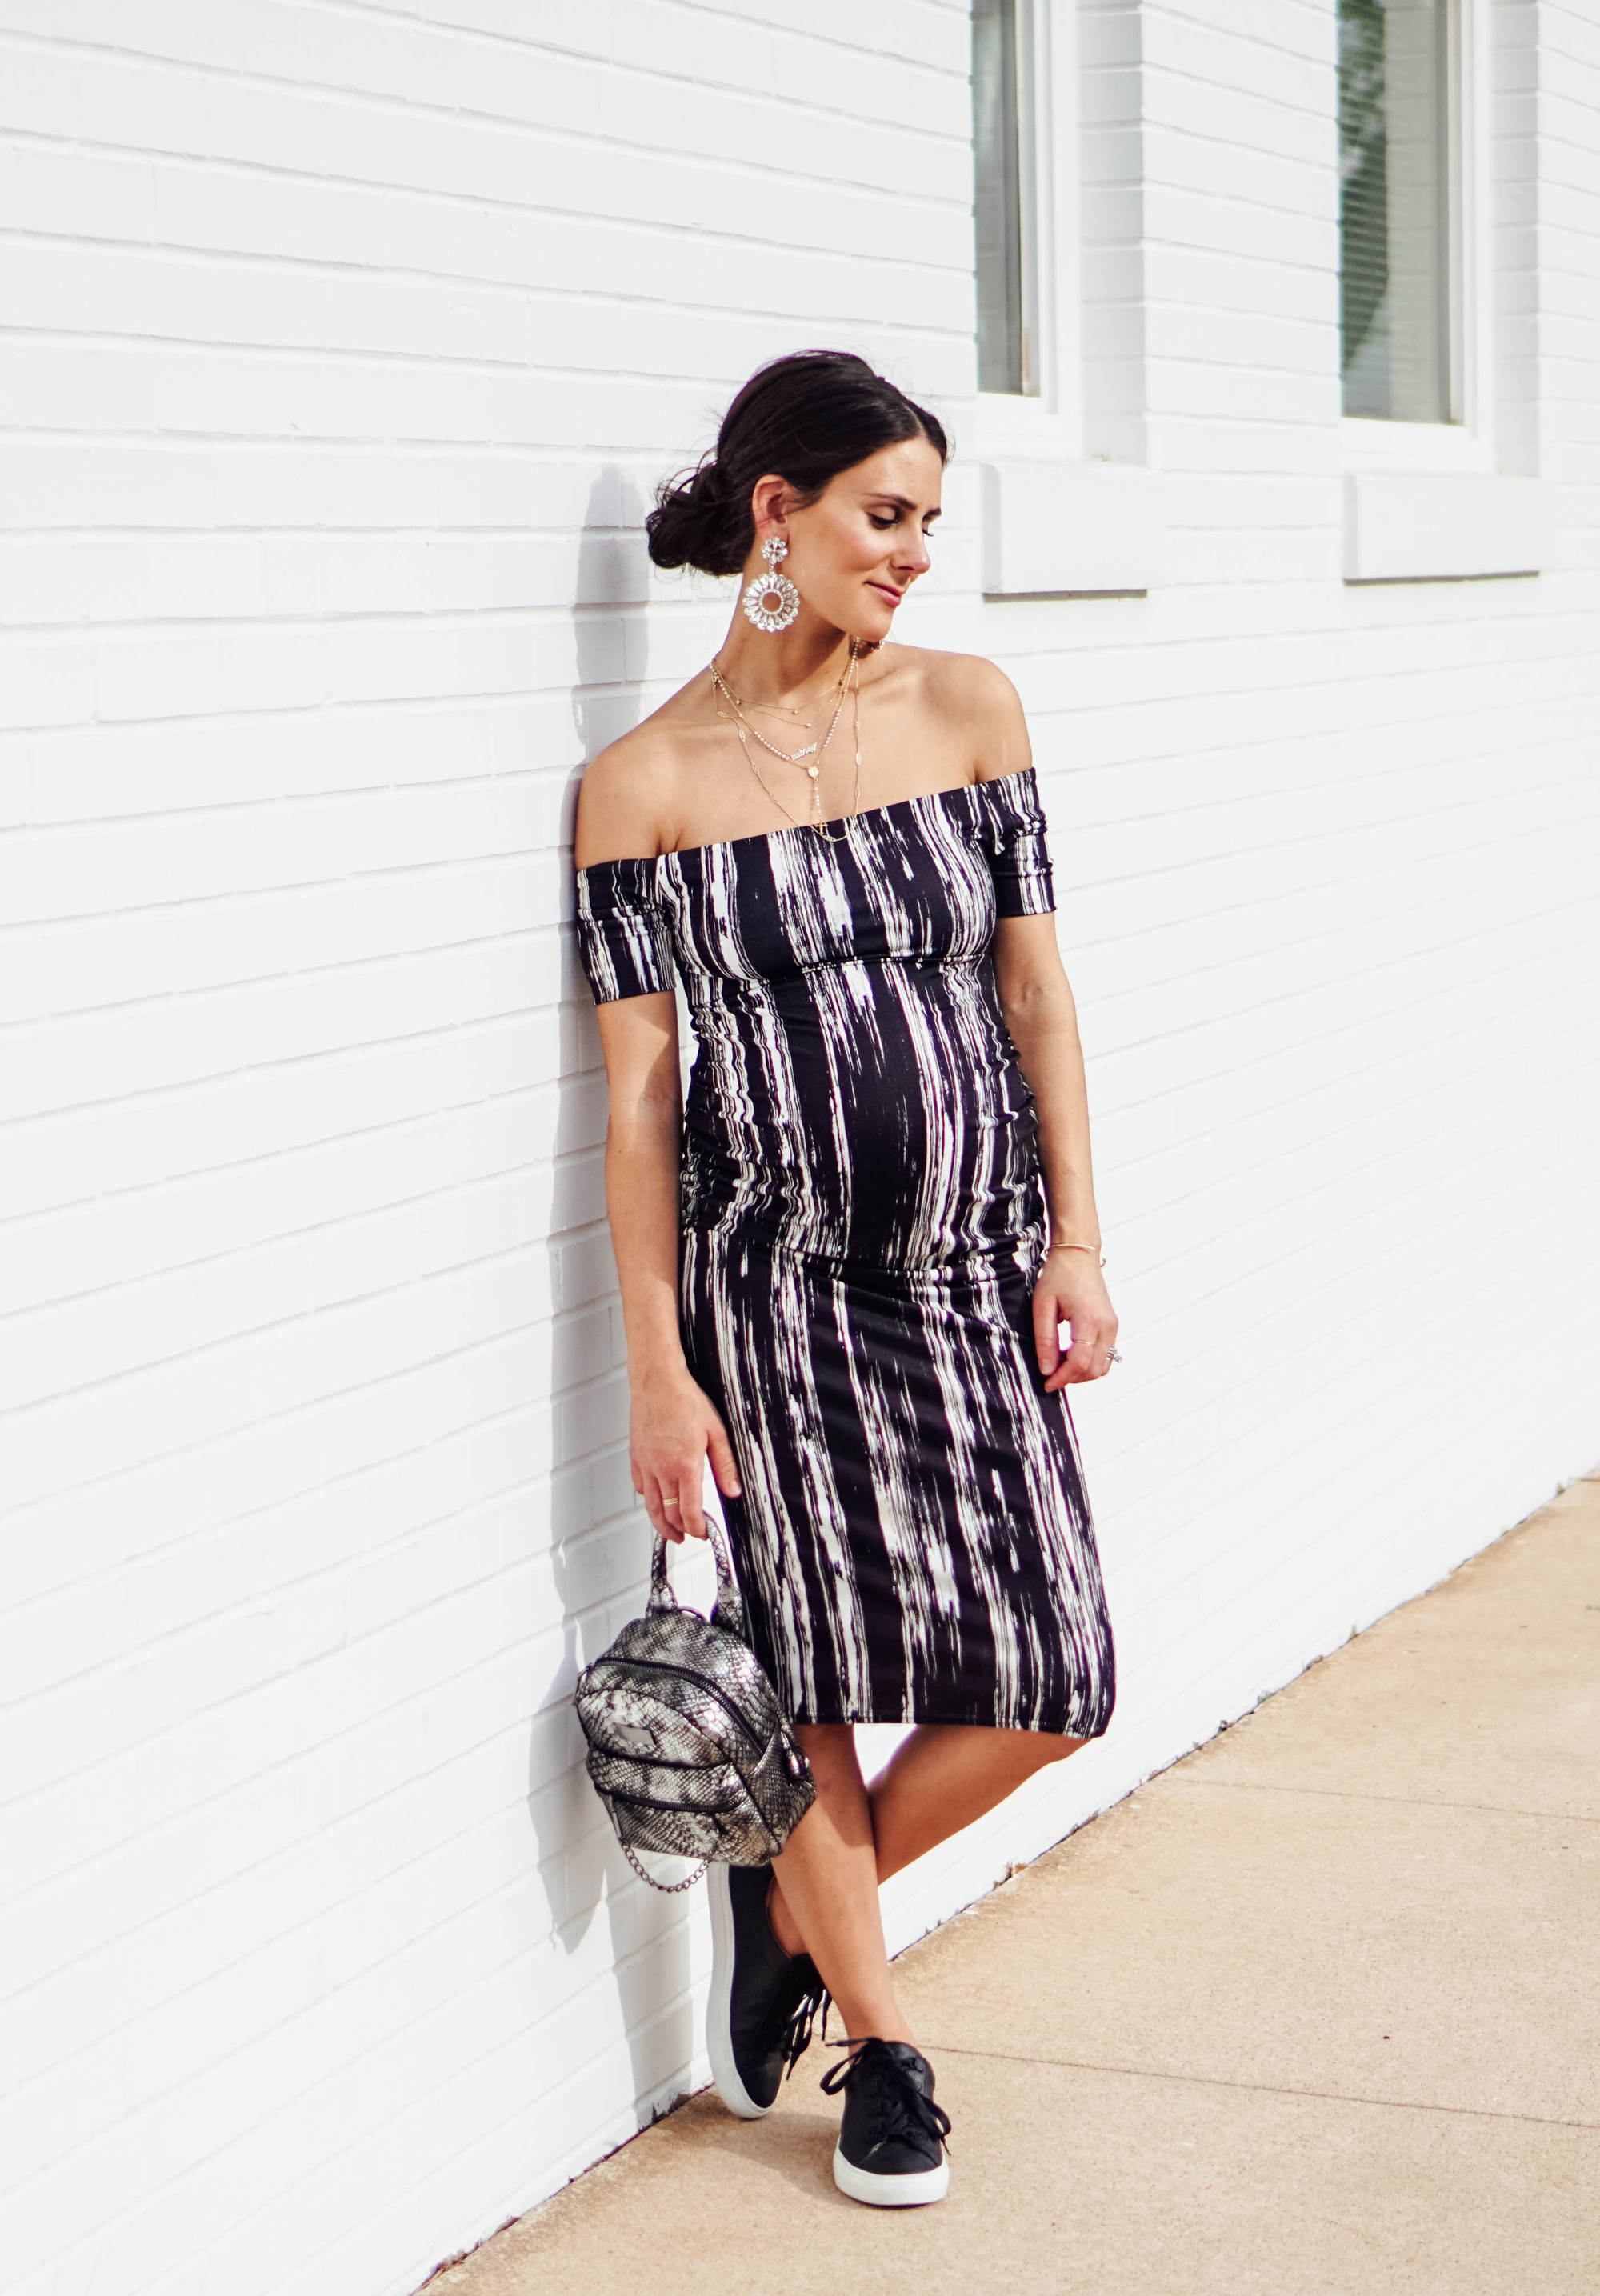 I'm sharing this super-flattering fitted maternity dress on TheDandyLiar.com, along with 32 things about me in honor of my 32nd birthday! Don't miss the $700 Nordstrom giveaway at the end!